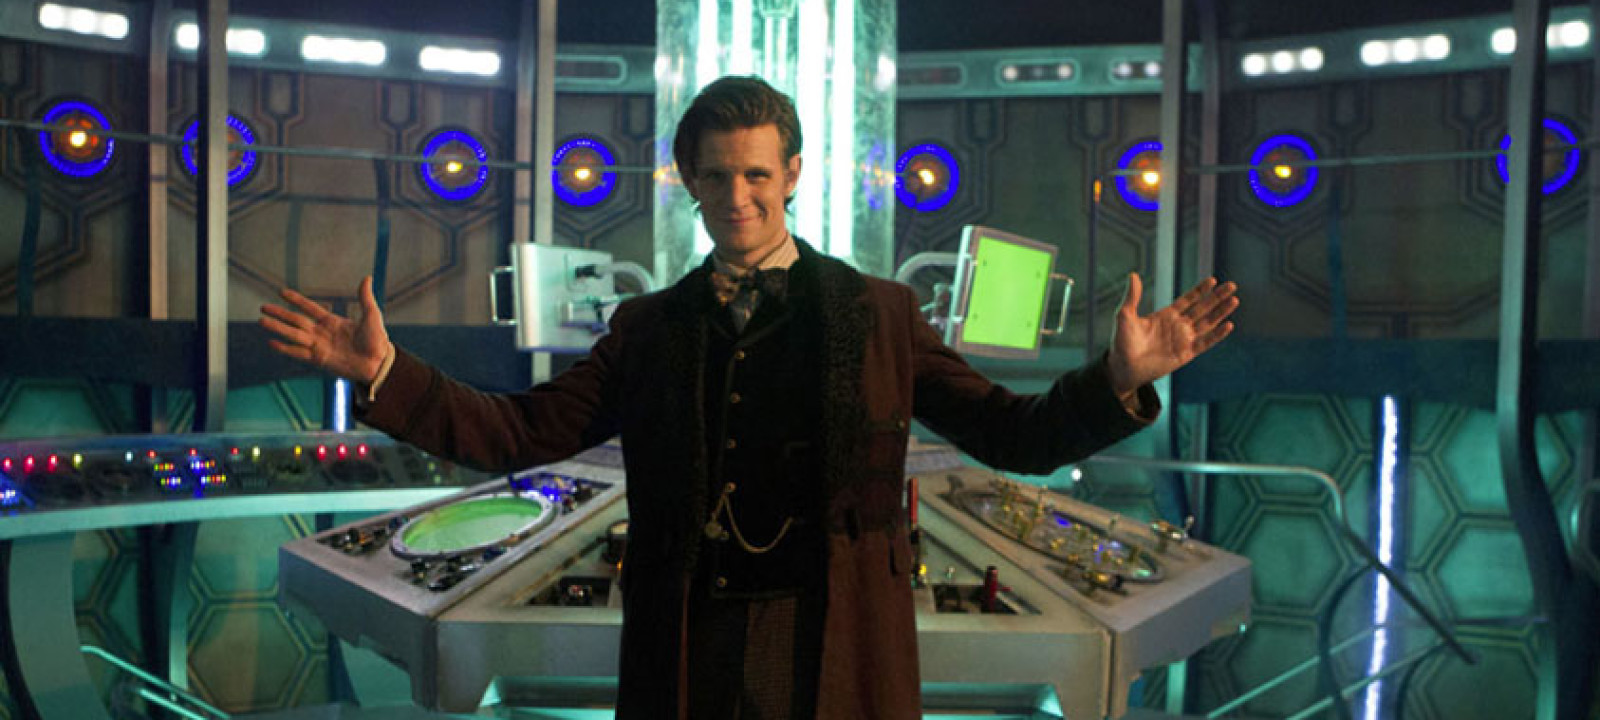 The new-look TARDIS interior